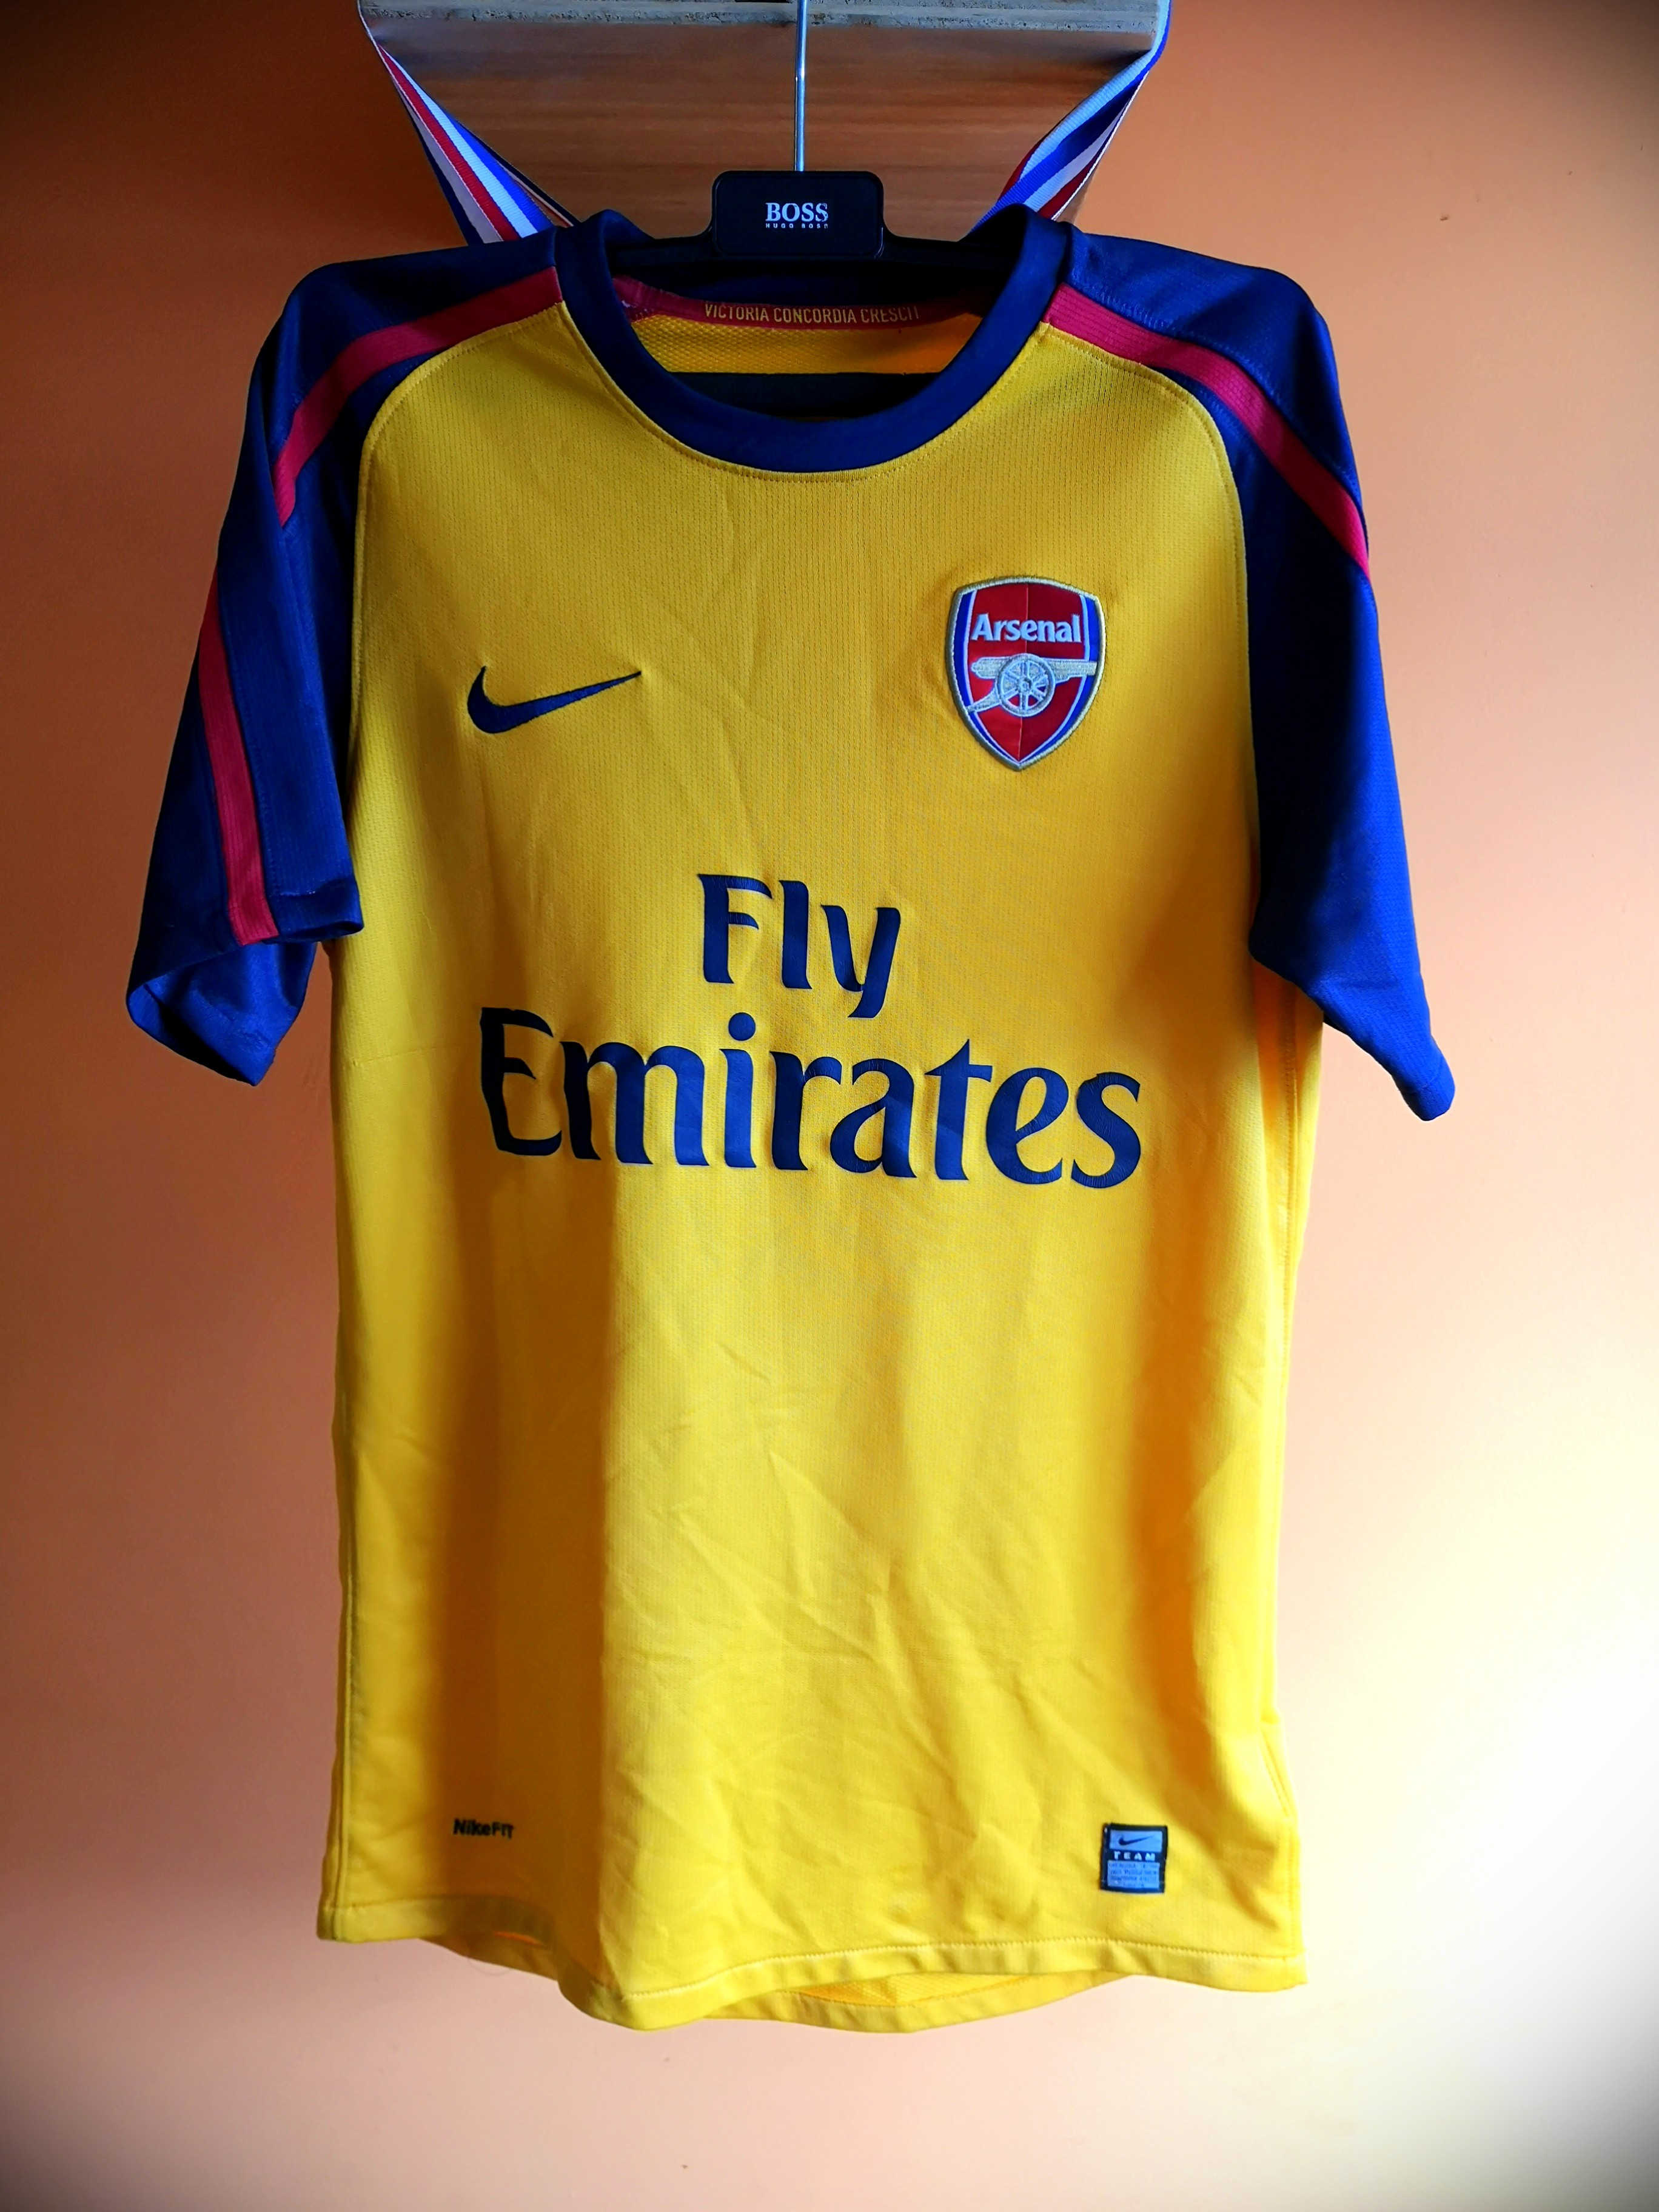 512e430b314 Arsenal Away Kit 2009 – Galleria Immagini Immagini Club